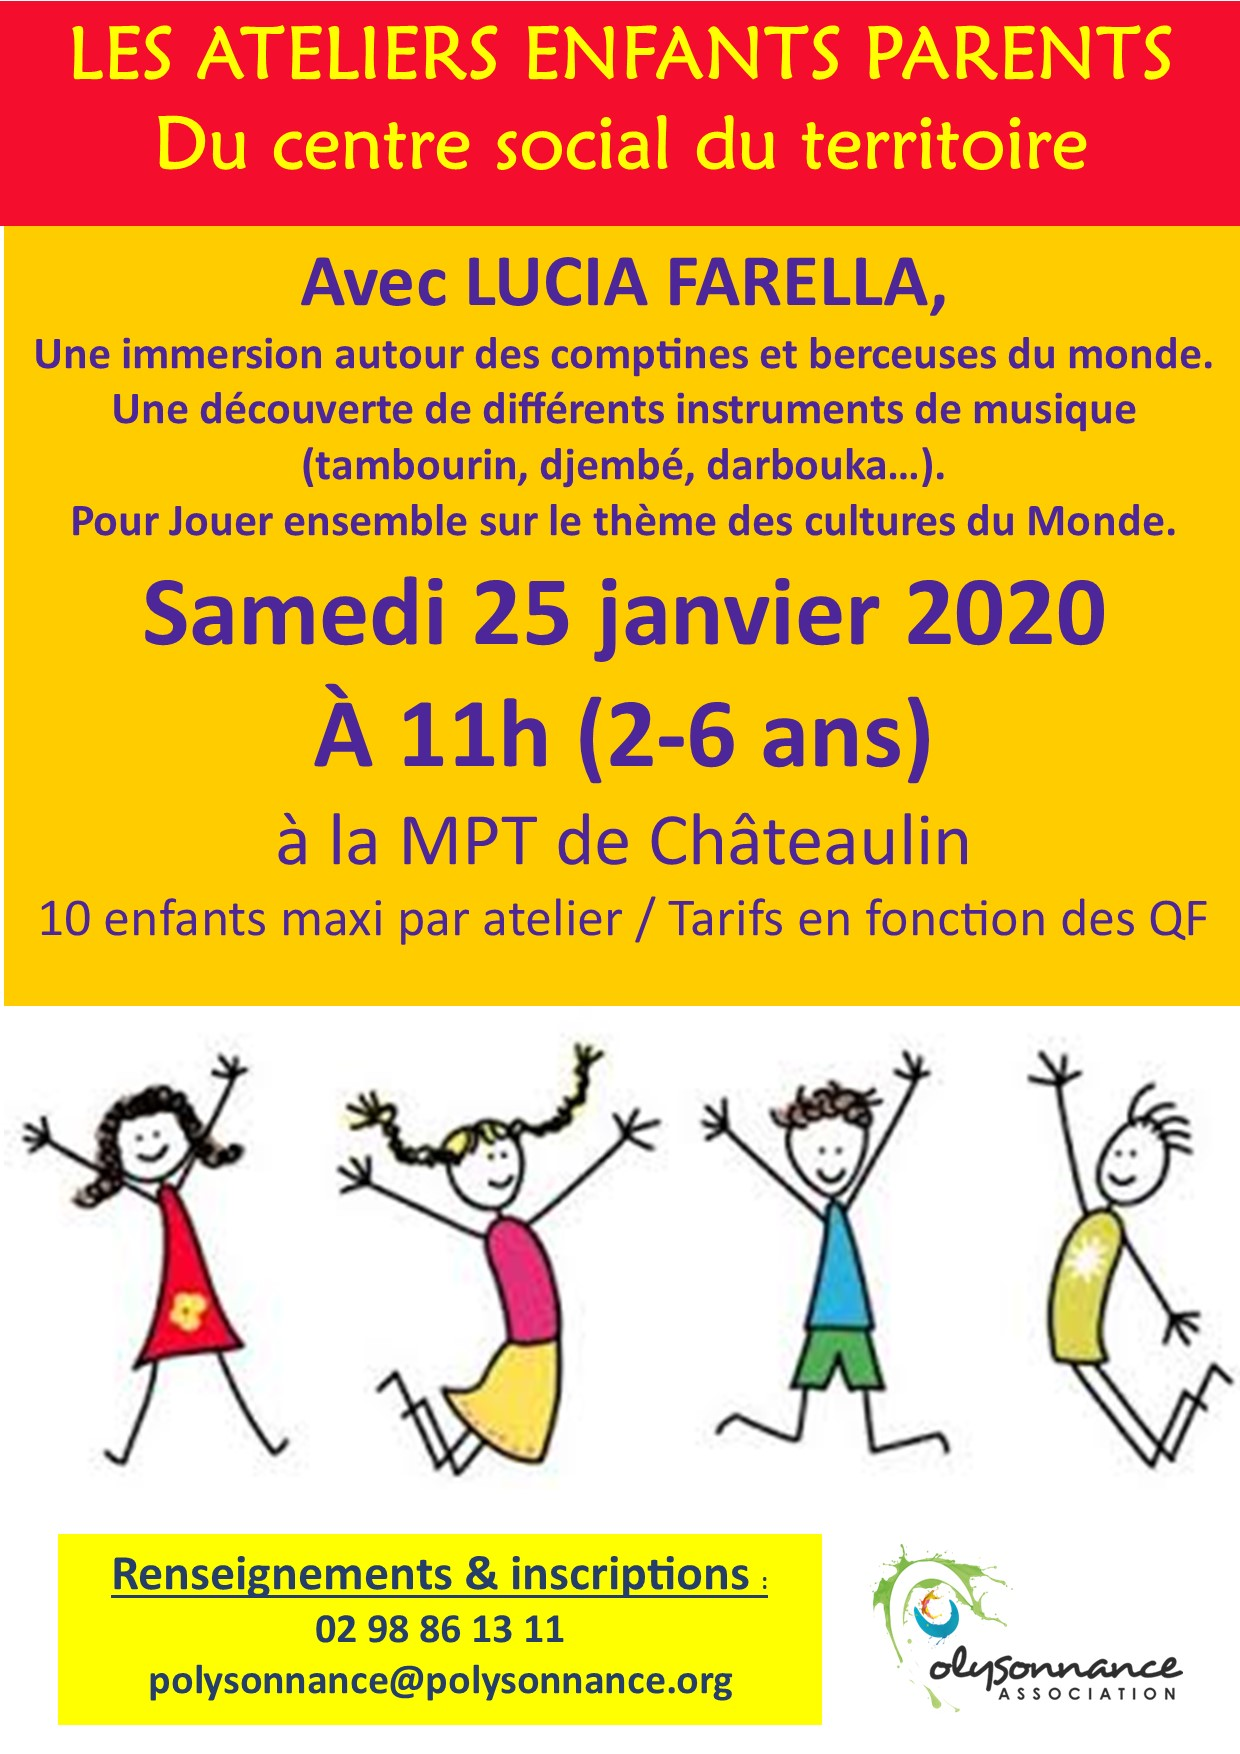 Atelier enfants-parents